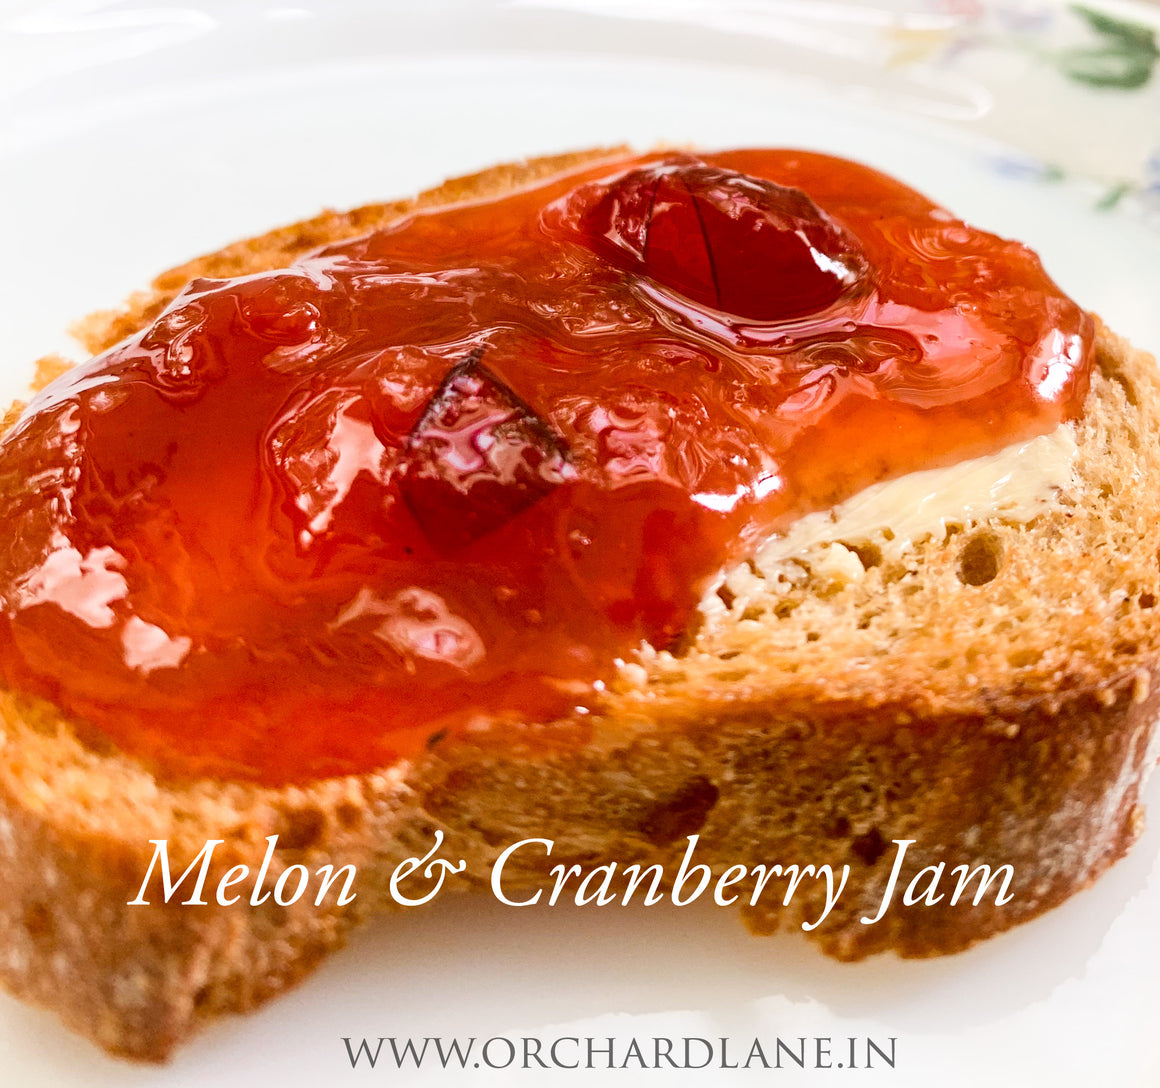 Melon and Cranberry Jam- 80% Fruit, Low sugar, No Preservatives or colours or flavours - 285 grams